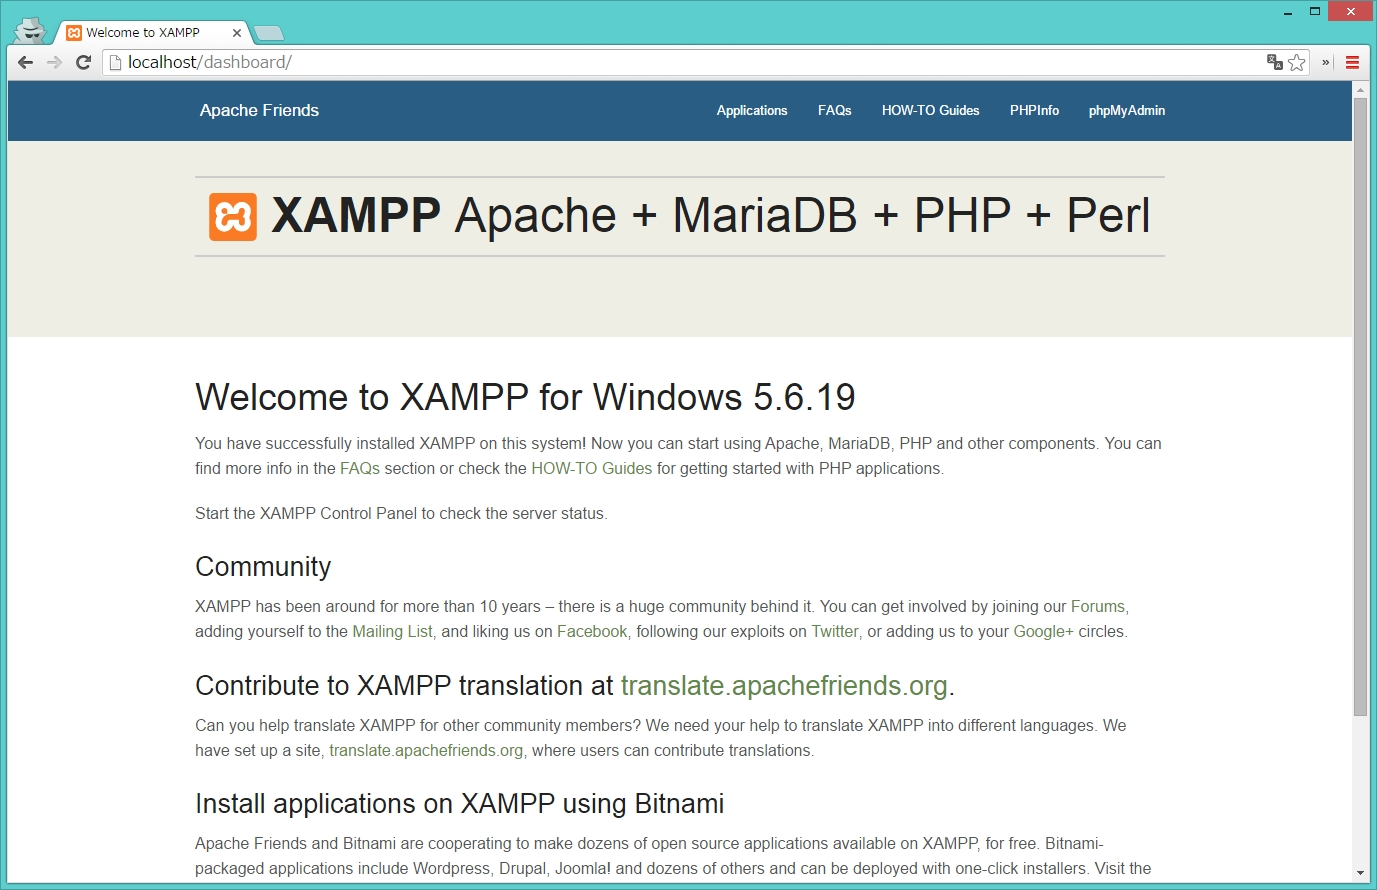 2016-03-17 03_54_27-Welcome to XAMPP